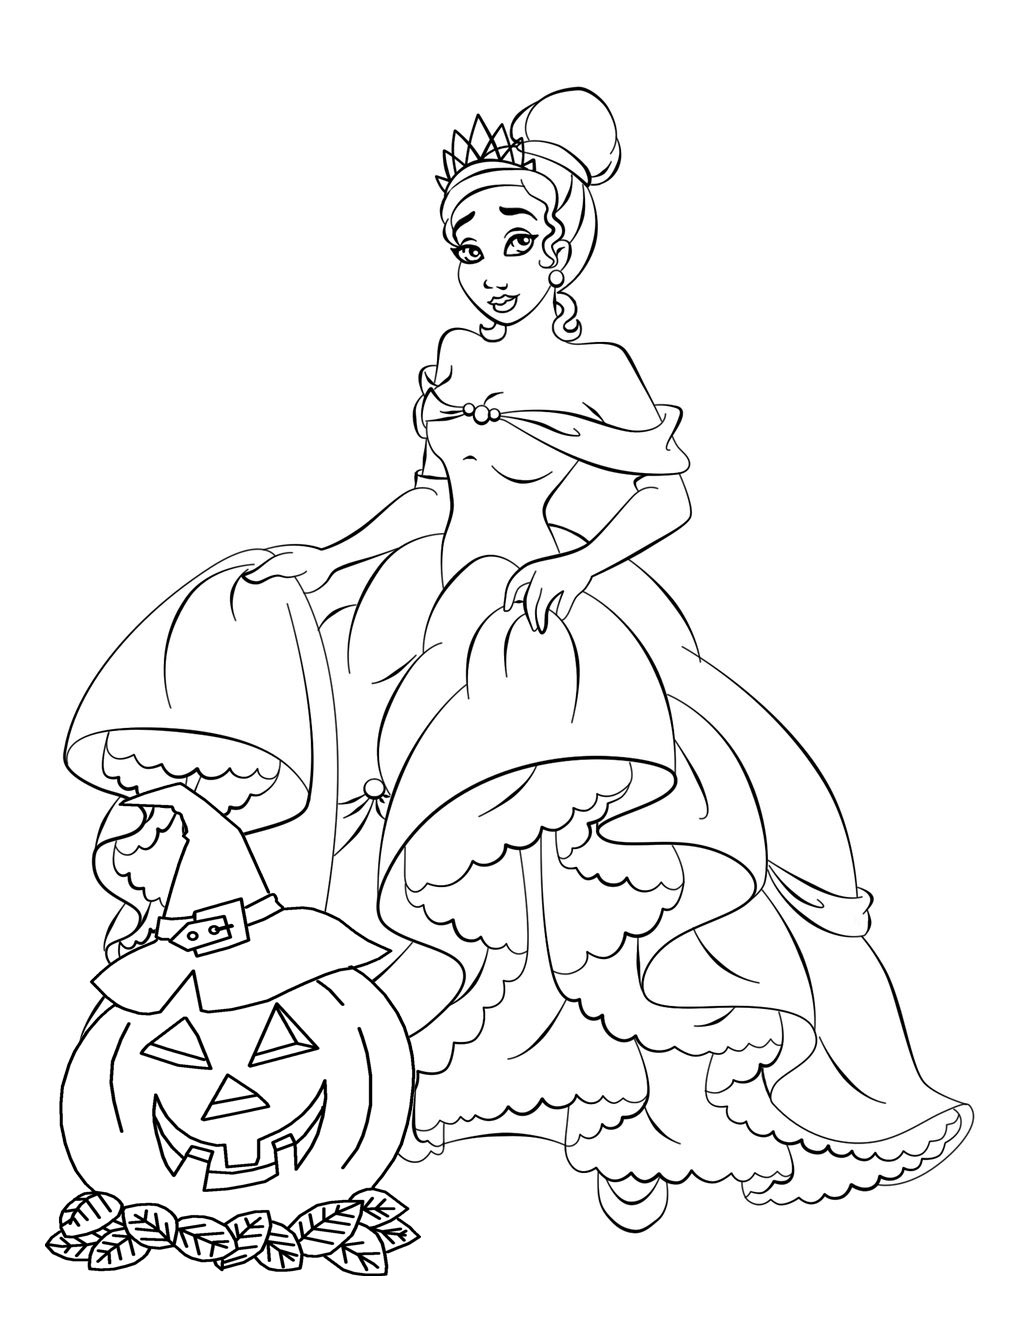 Princess Coloring Pages, Sheets and Pictures Free  - princess coloring pages free printable